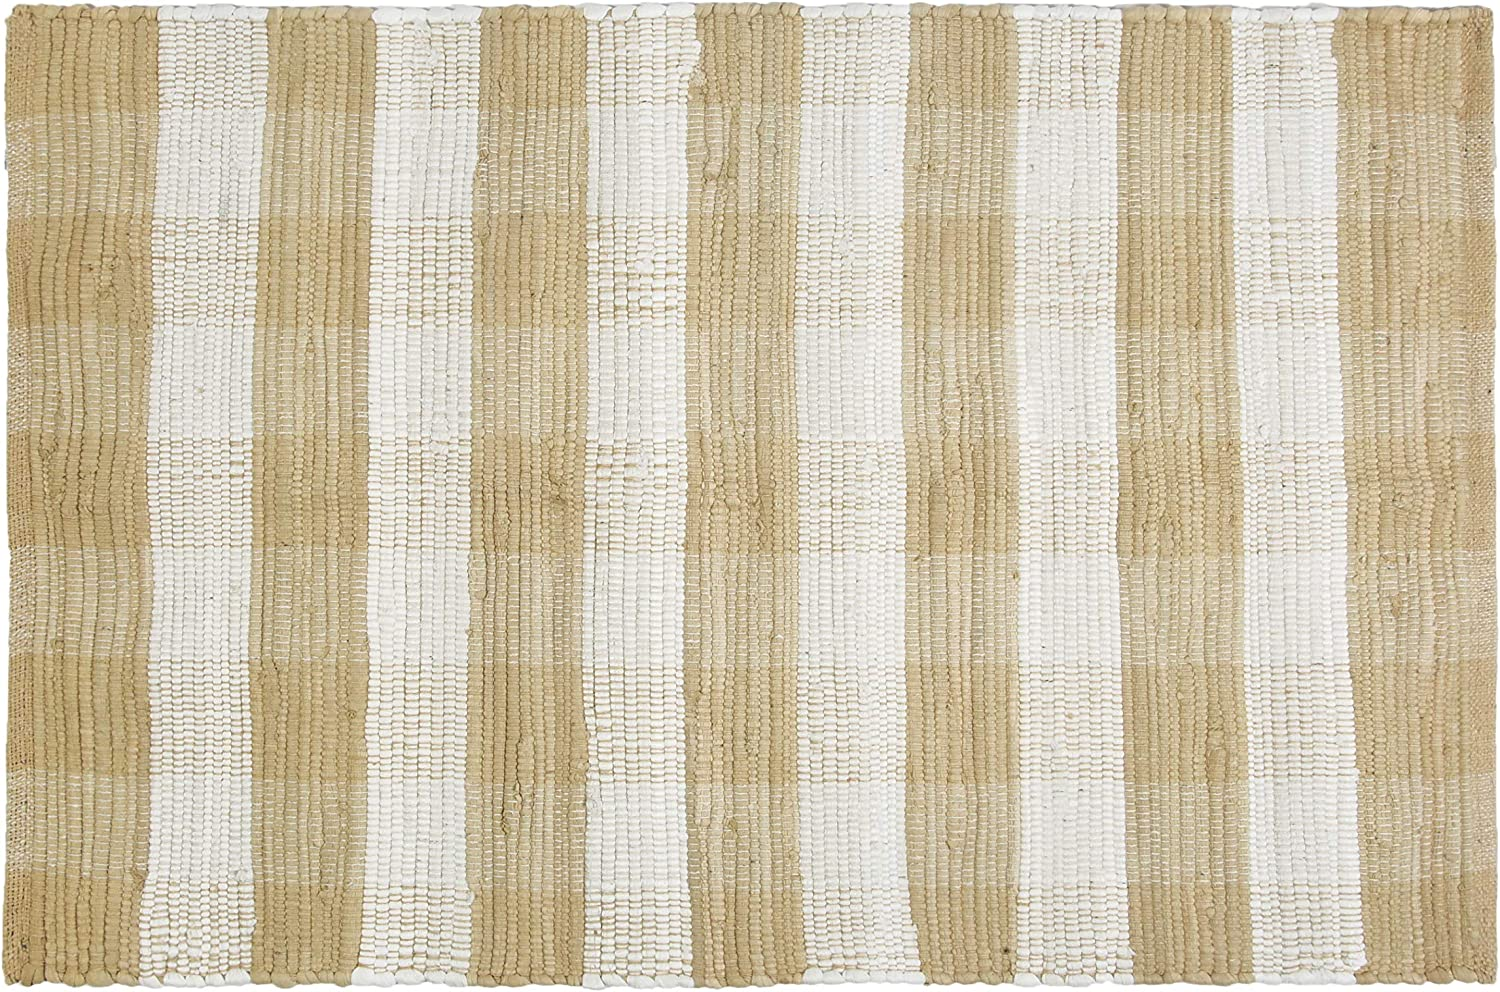 GLAMBURG Cotton Buffalo Check Plaid Rugs Washable, Checkered Rug Welcome Door Mat 22x34 Rug for Kitchen Carpet Bathroom Outdoor Porch Laundry Living Room, Farmhouse Reversible Rag Rug Beige Natural